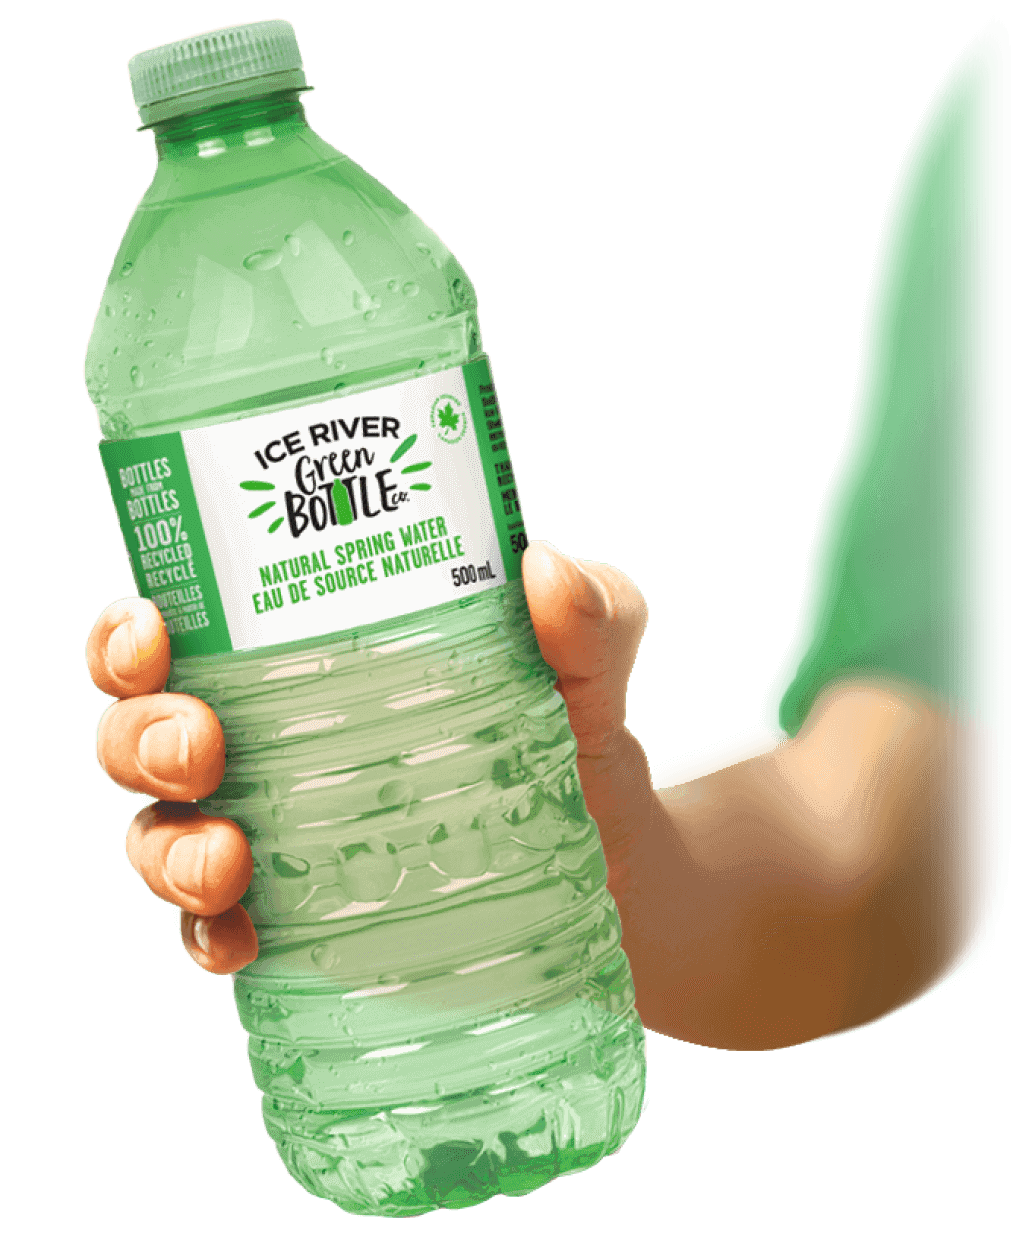 Hand holding a Ice River Green Bottle Co. bottle of water